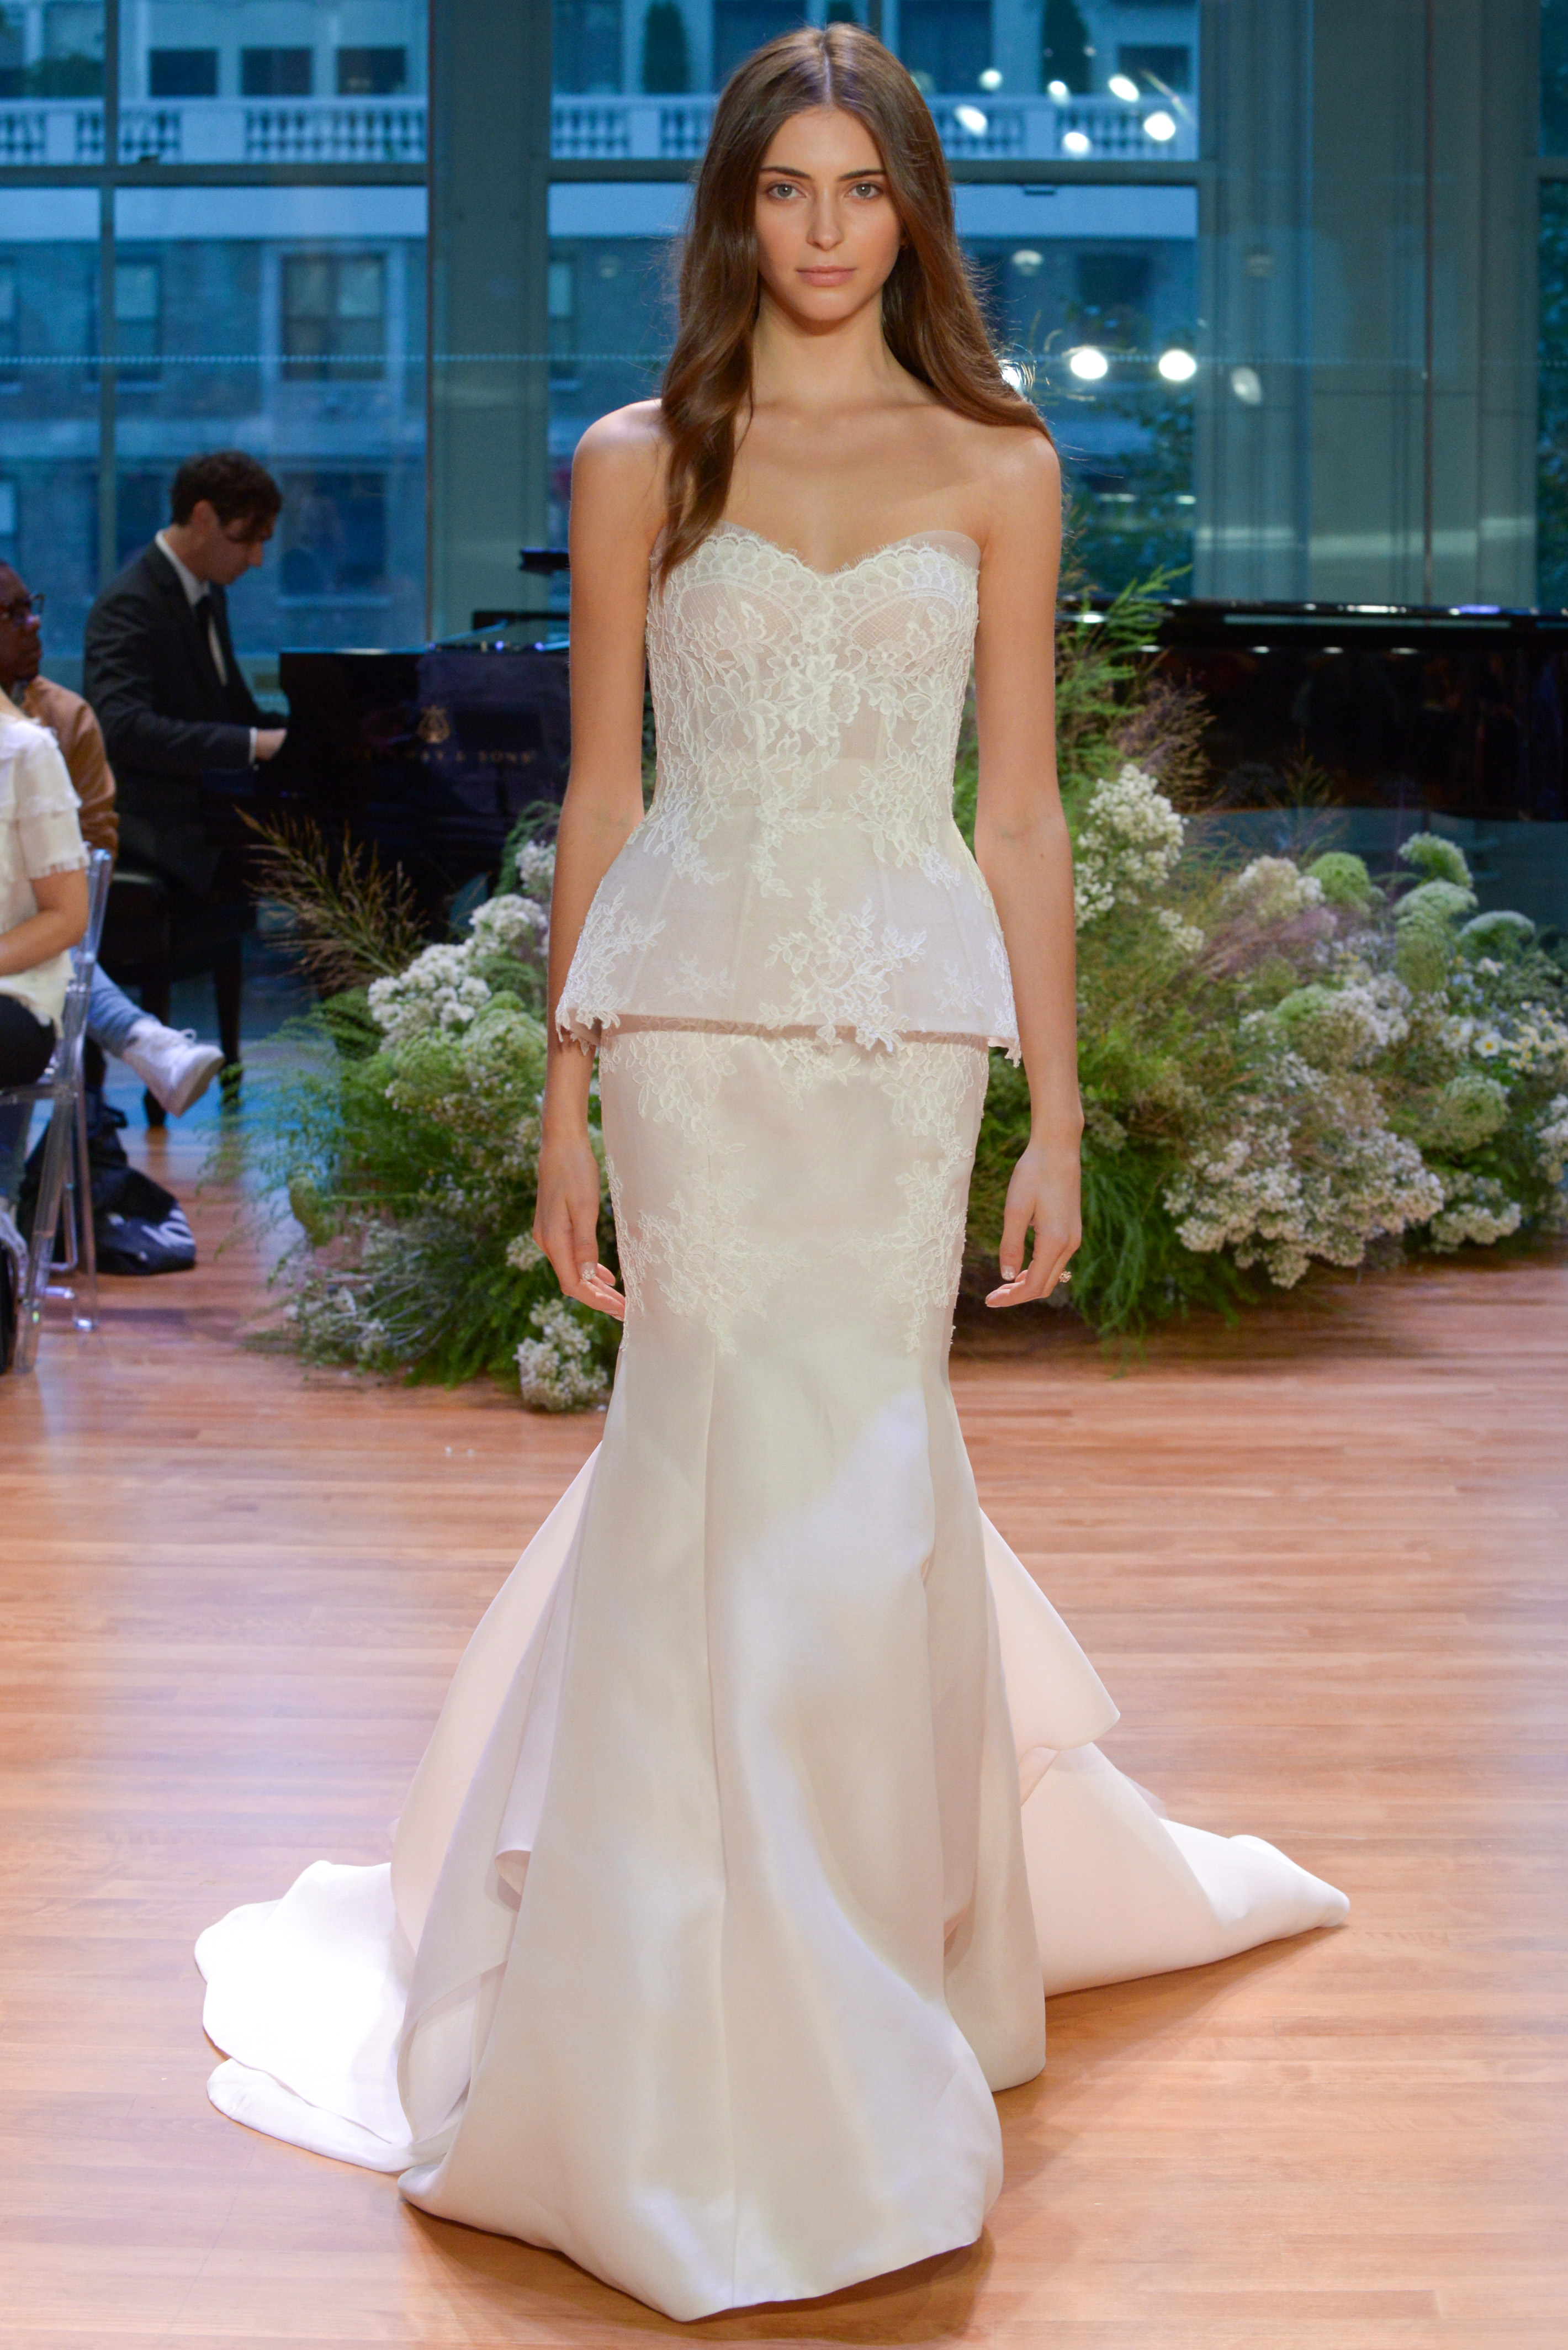 Monique Lhuillier Fall 2017 Wedding Dress Collection